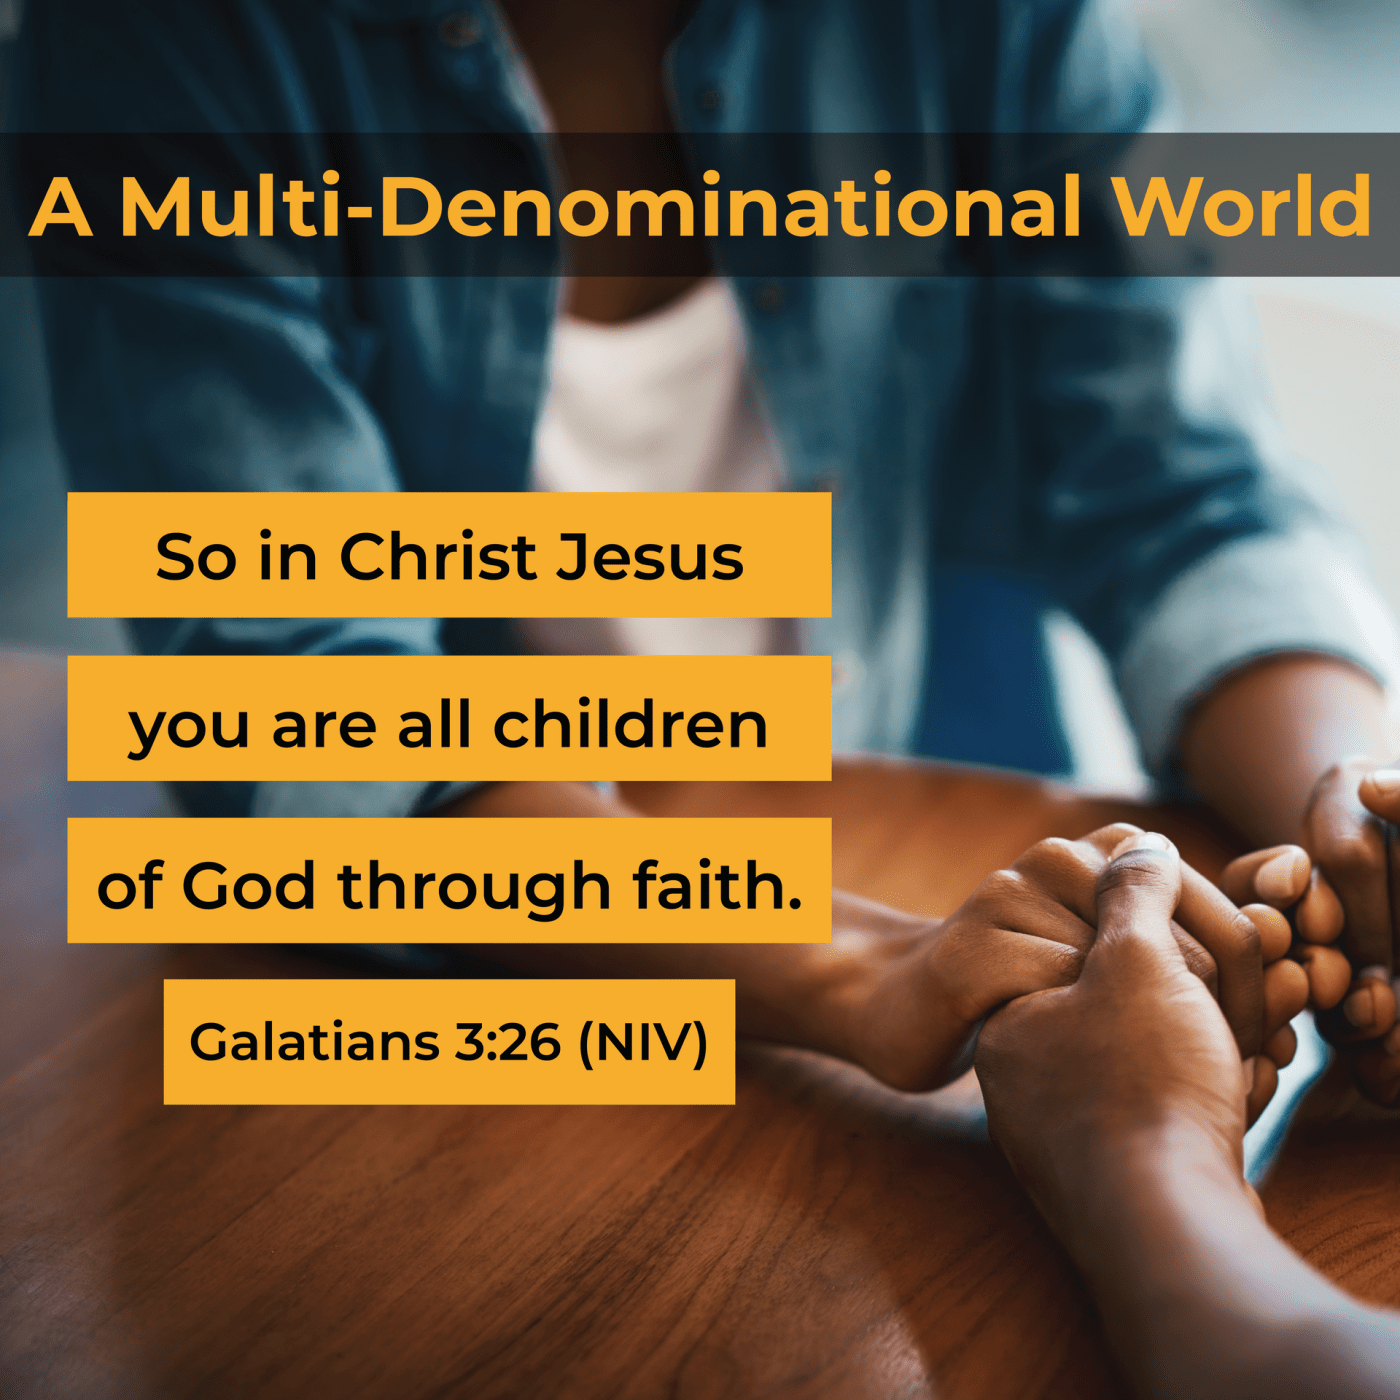 A Multi-Denominational World. So in Christ Jesus you are all children of God through faith. Galatians 3:26 (NIV).